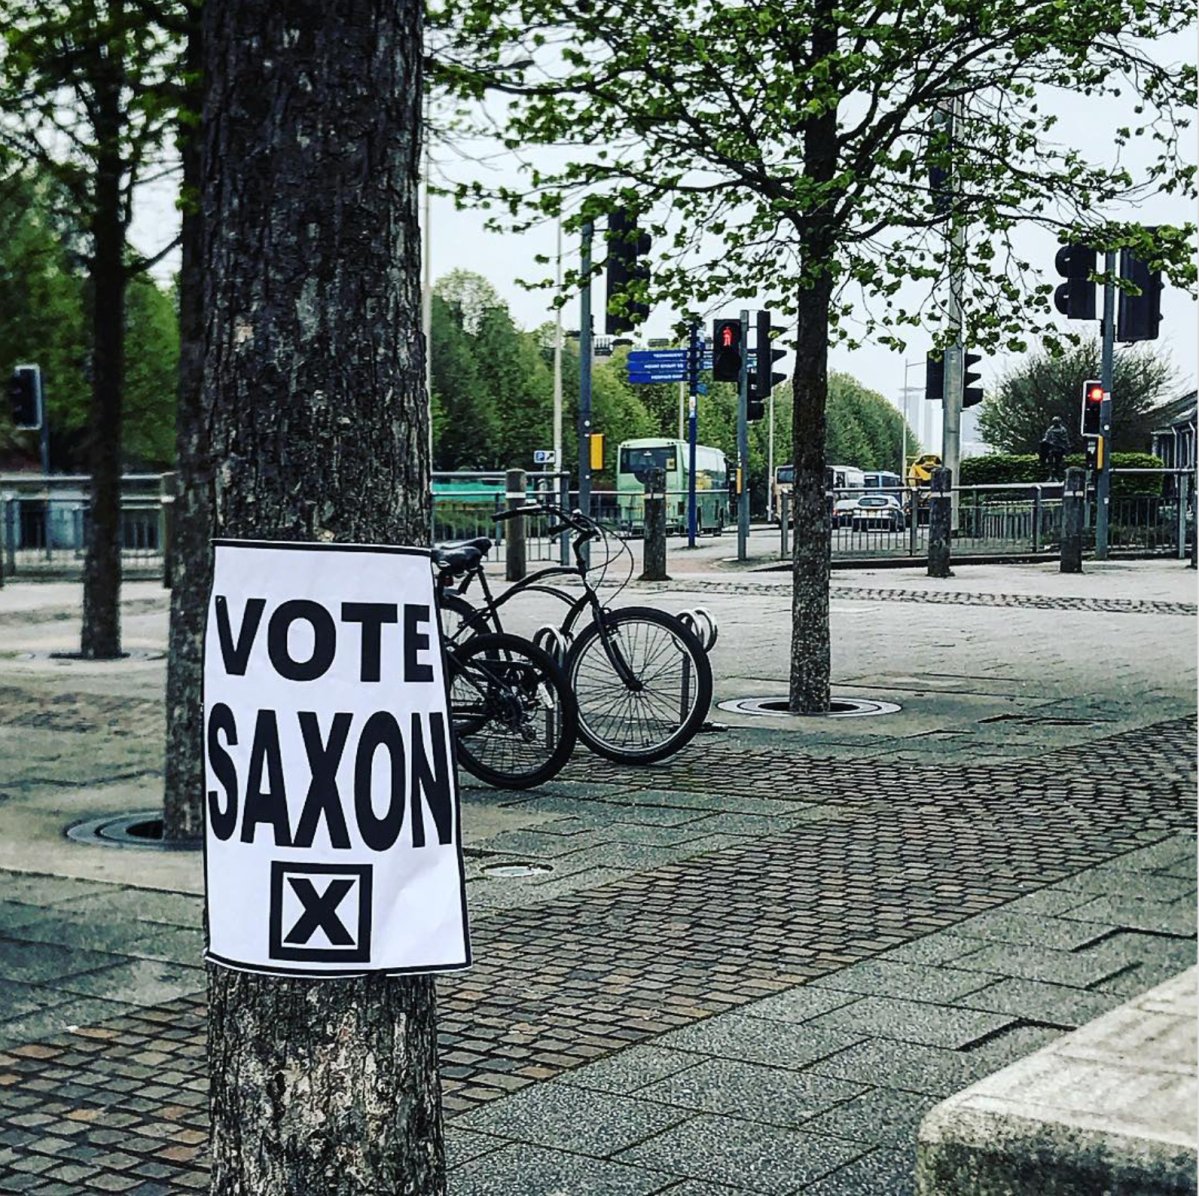 Should we Vote Saxon?